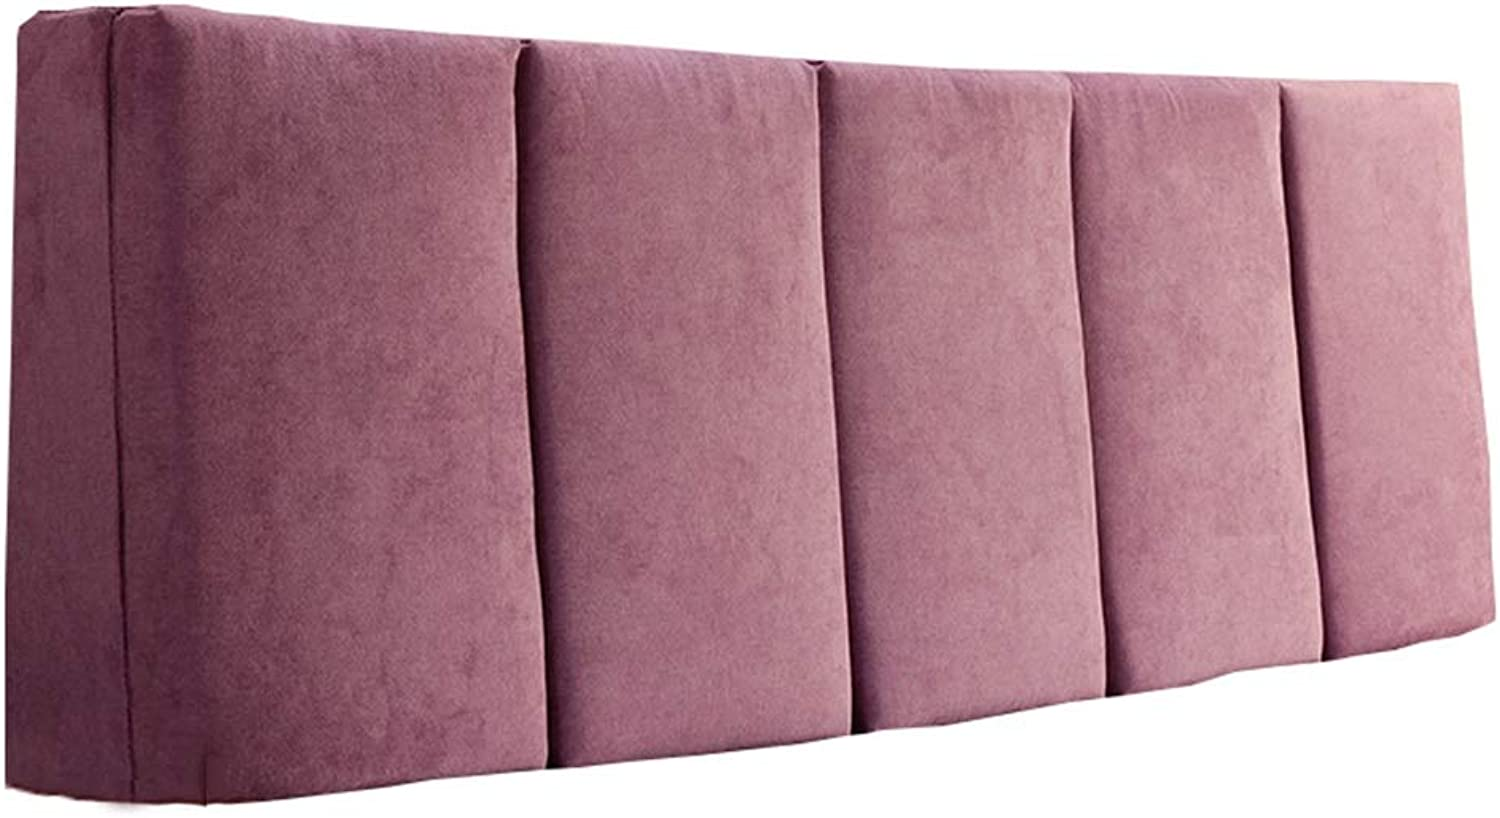 WENZHE Upholstered Fabric Headboard Bedside Cushion Pads Cover Bed Wedges Backrest Waist Pad Cloth Waist Belt Soft Case Home Hotel Backrest Washable, 4 colors (color   A-Purple, Size   200x55x5cm)